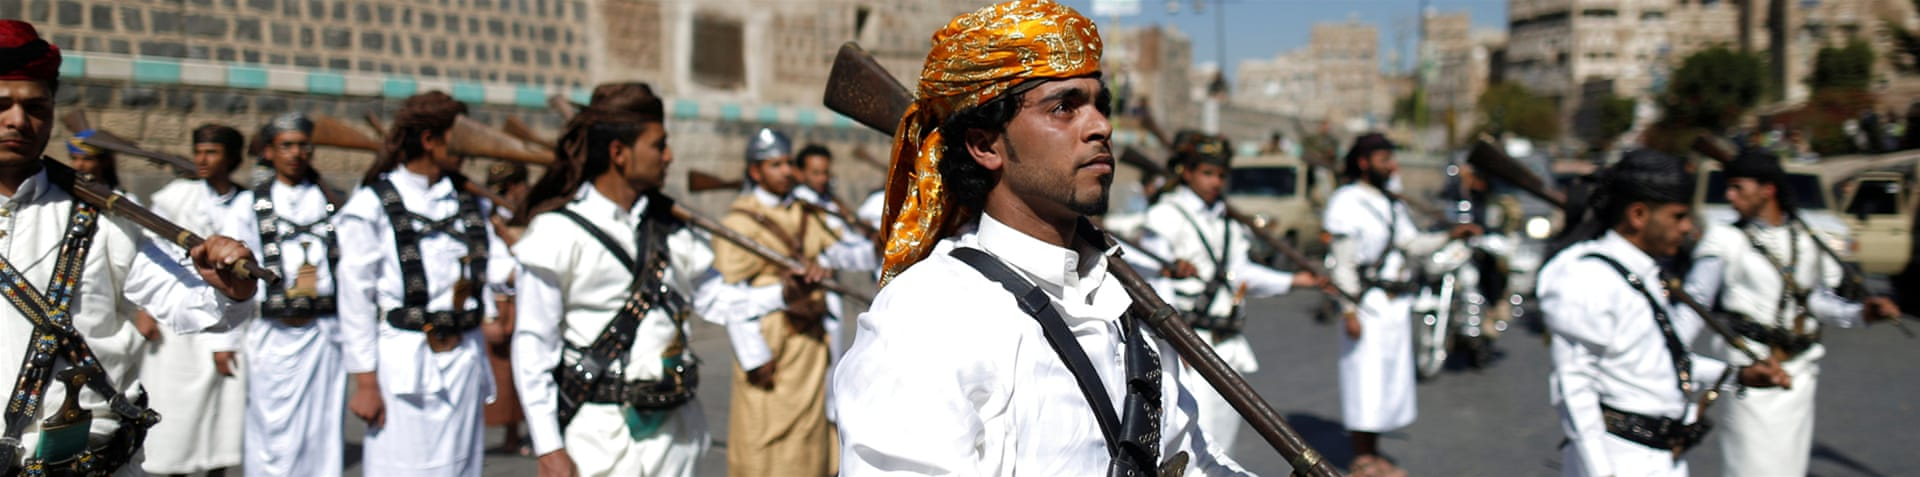 Taiz has been under Houthi siege for 23 months now [File: Khaled Abdullah/Reuters]